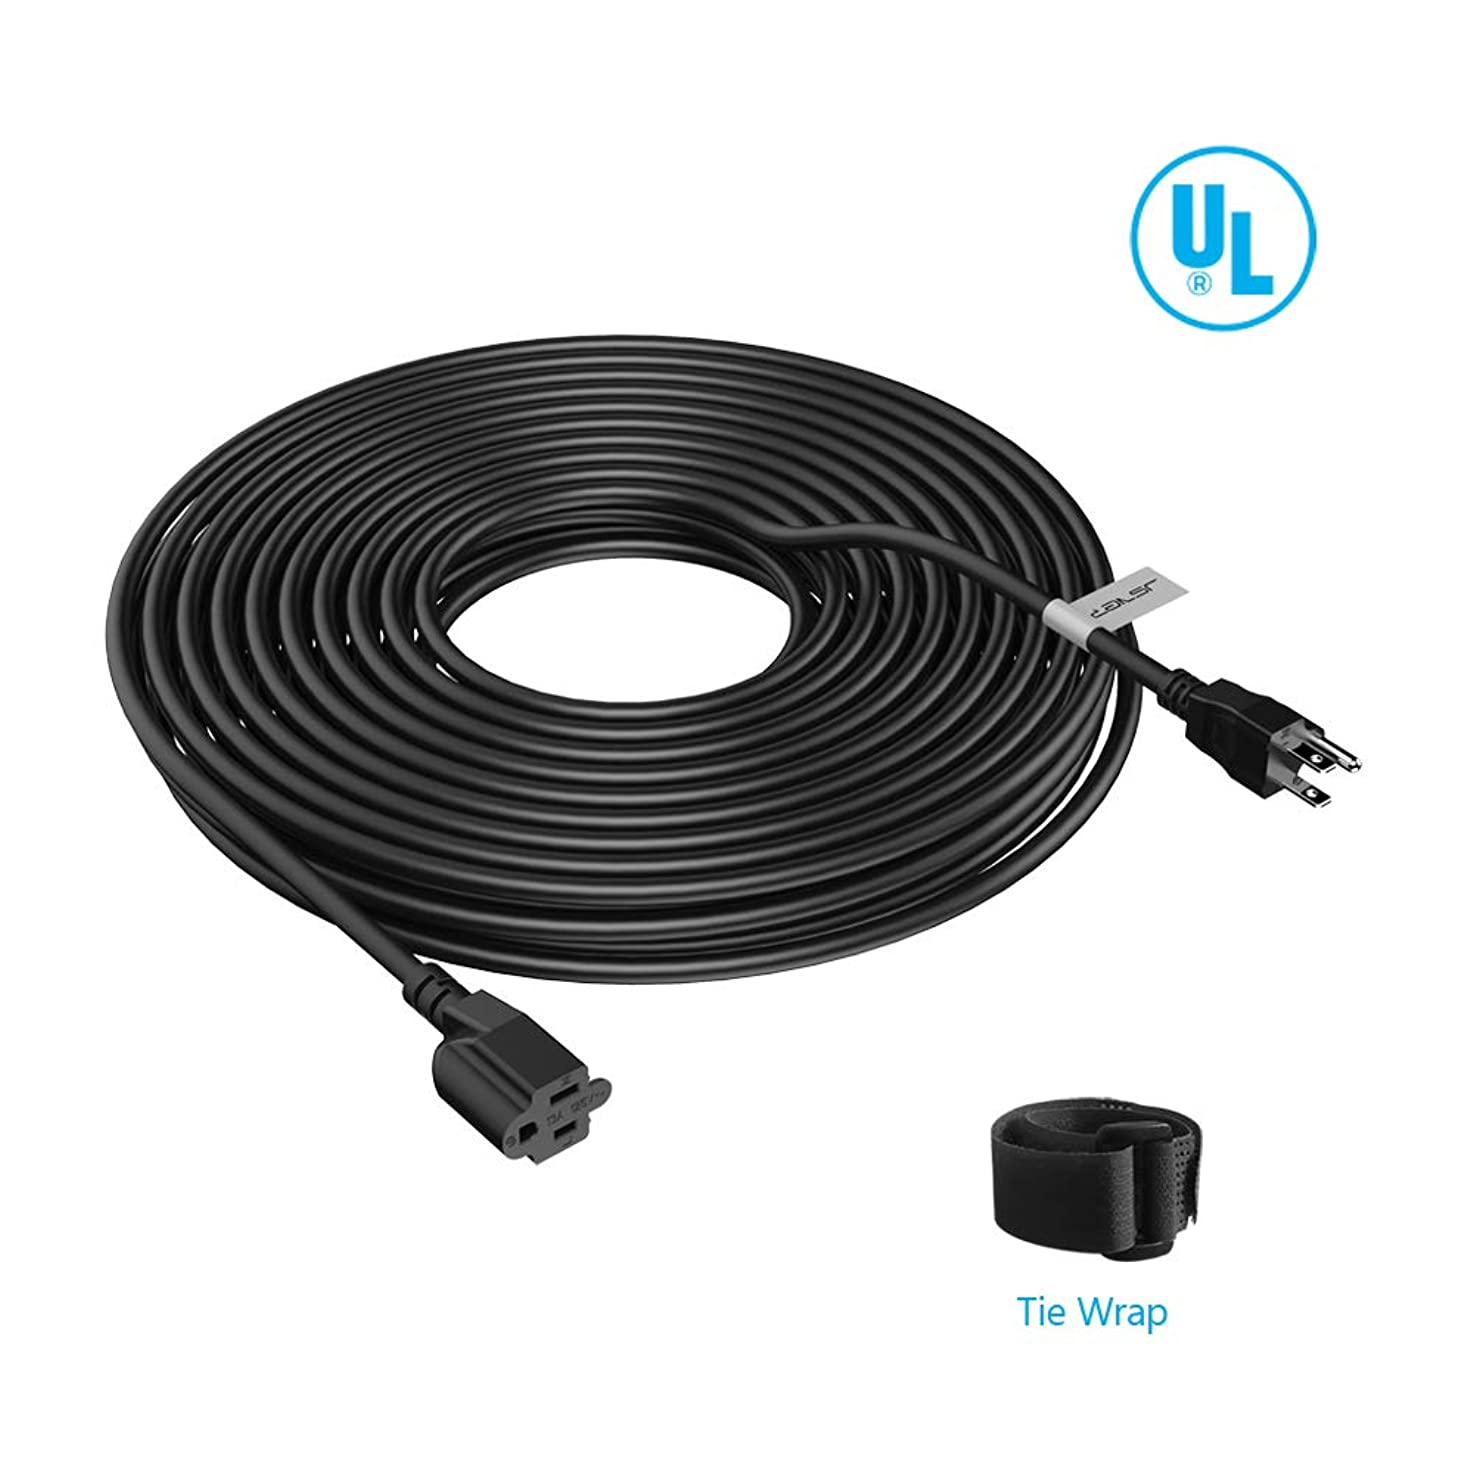 JSVER Power Extension Cord 15 ft Universal Three Prong 125V 13A 16 AWG Cable with Tire Wrap for powering computers, PDUs, monitors, printers and home/office peripherals Black Power Extension Cable